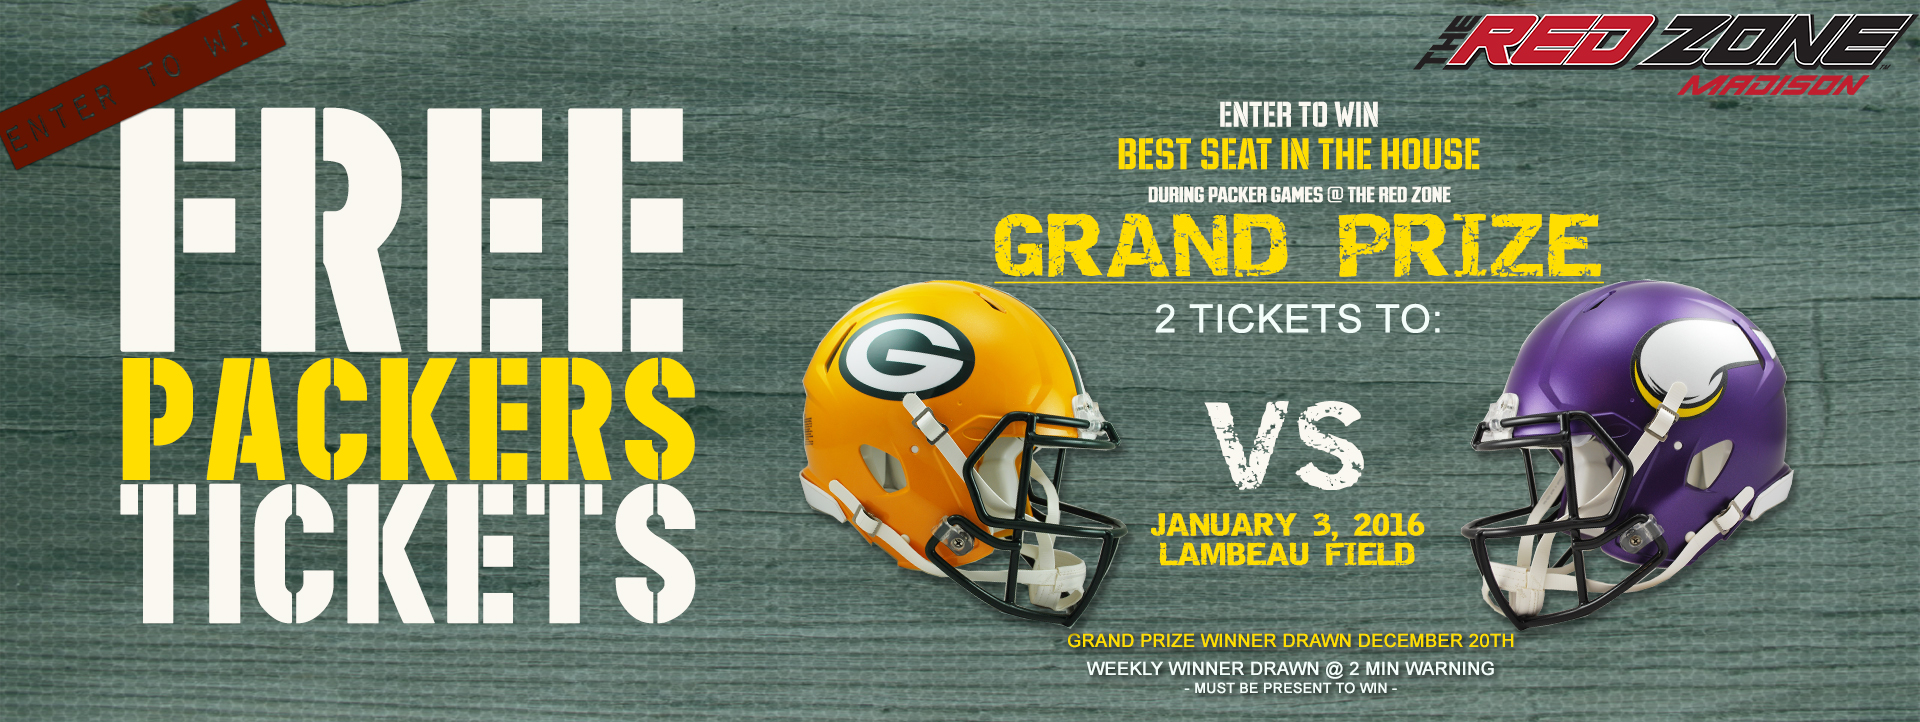 Best Seat In the House | Free Packers Tickets | Red Zone Madison